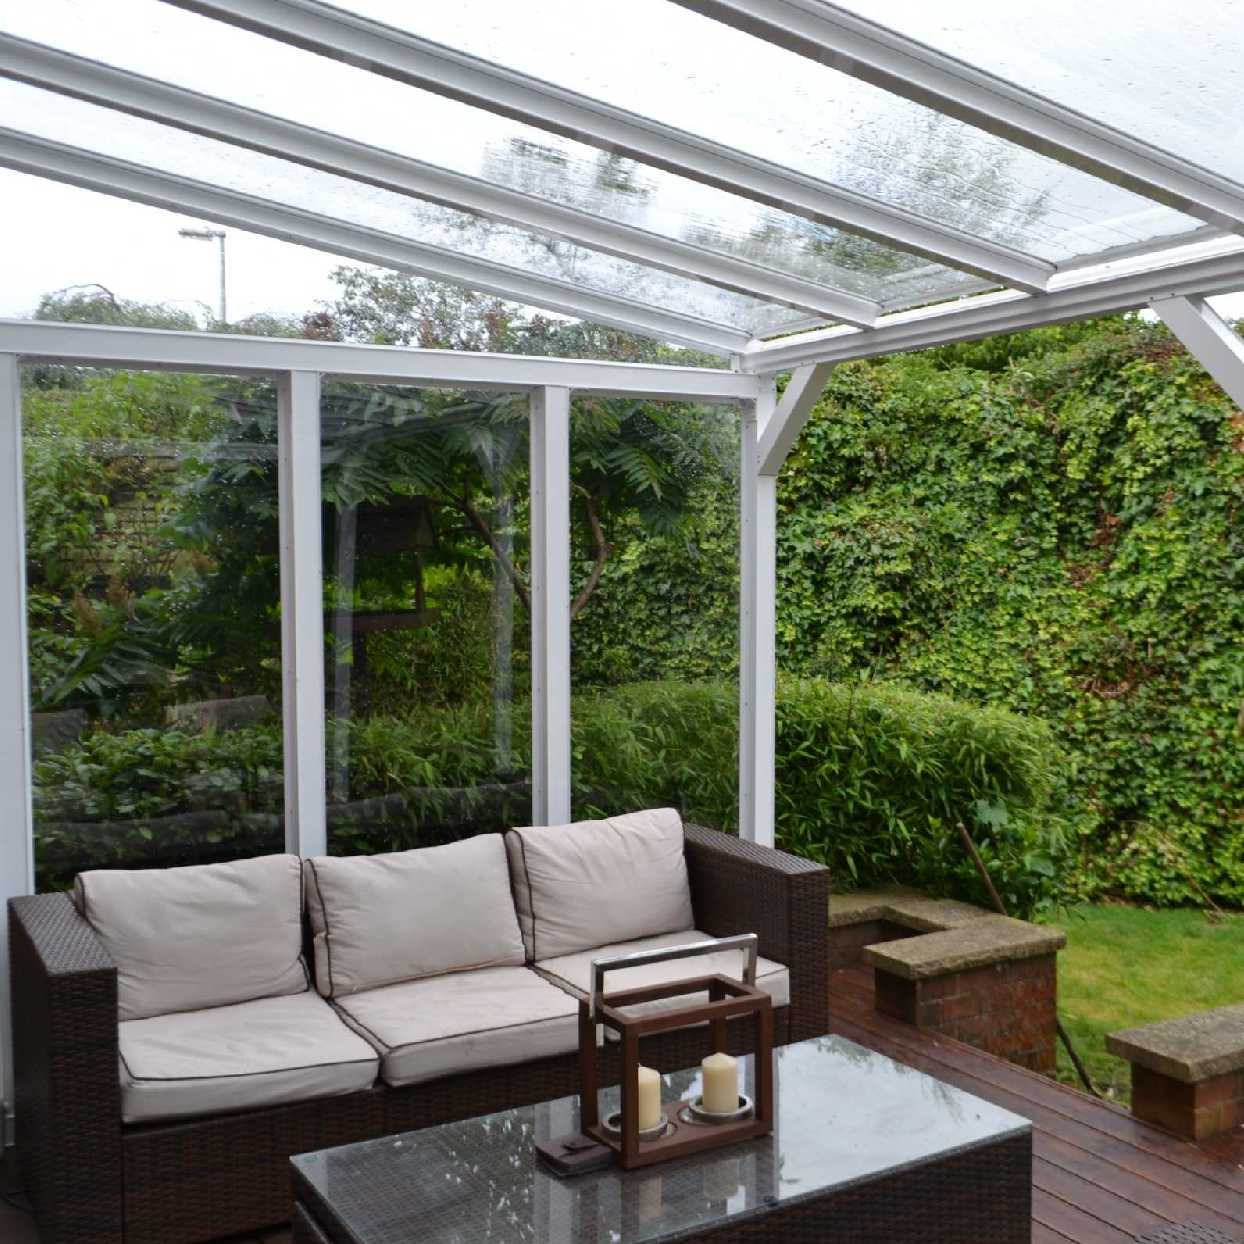 Great selection of Omega Smart Lean-To Canopy with 16mm Polycarbonate Glazing - 3.5m (W) x 3.5m (P), (3) Supporting Posts